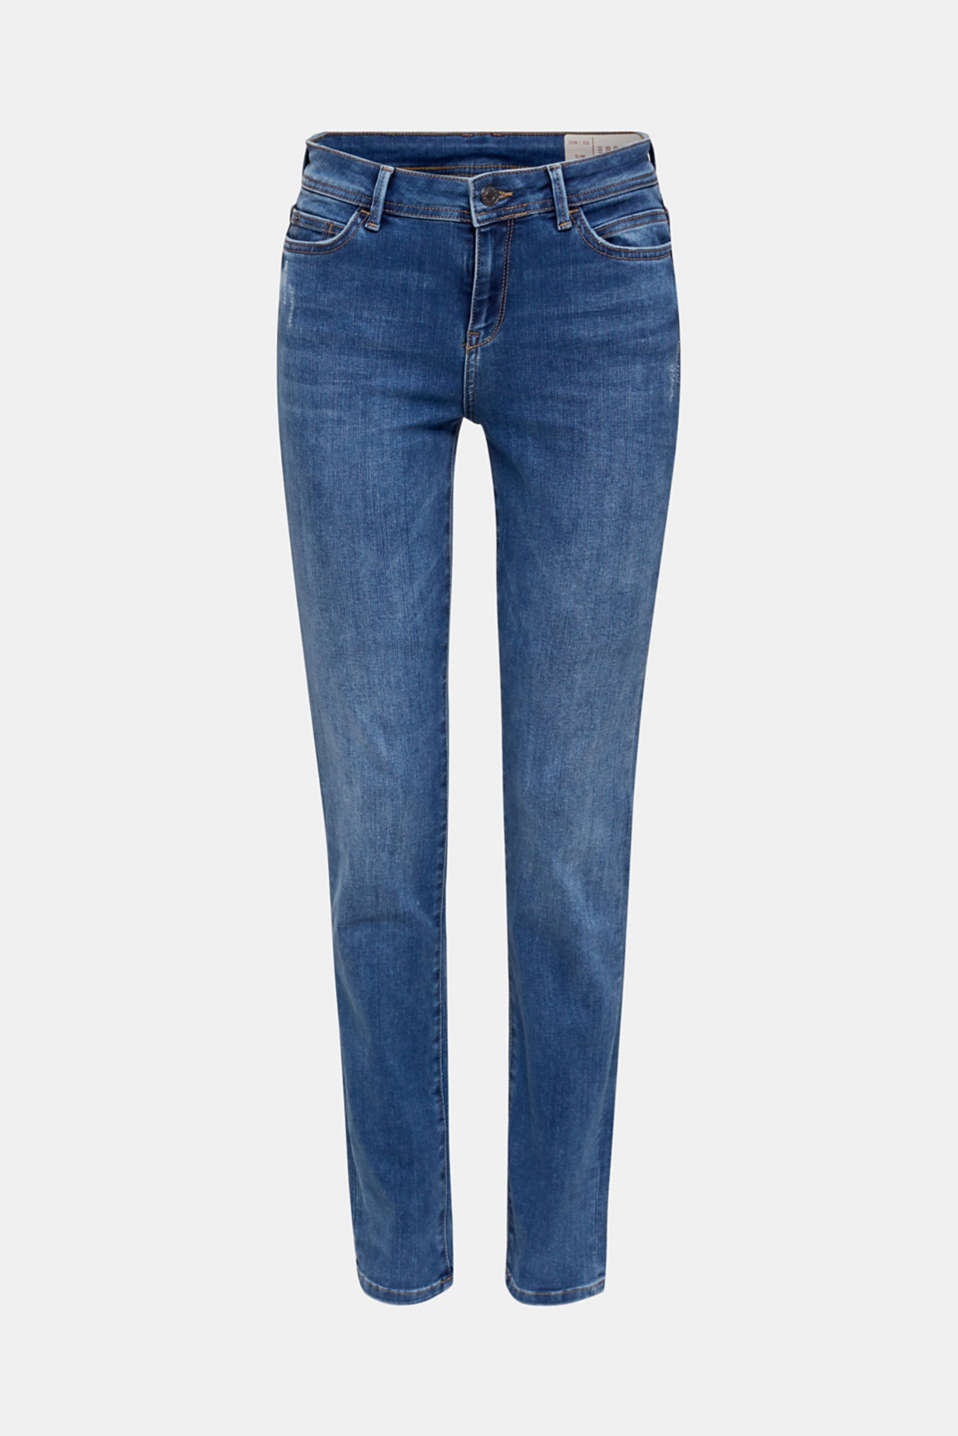 REPREVE stretch jeans with recycled polyester, BLUE MEDIUM WASH, detail image number 6